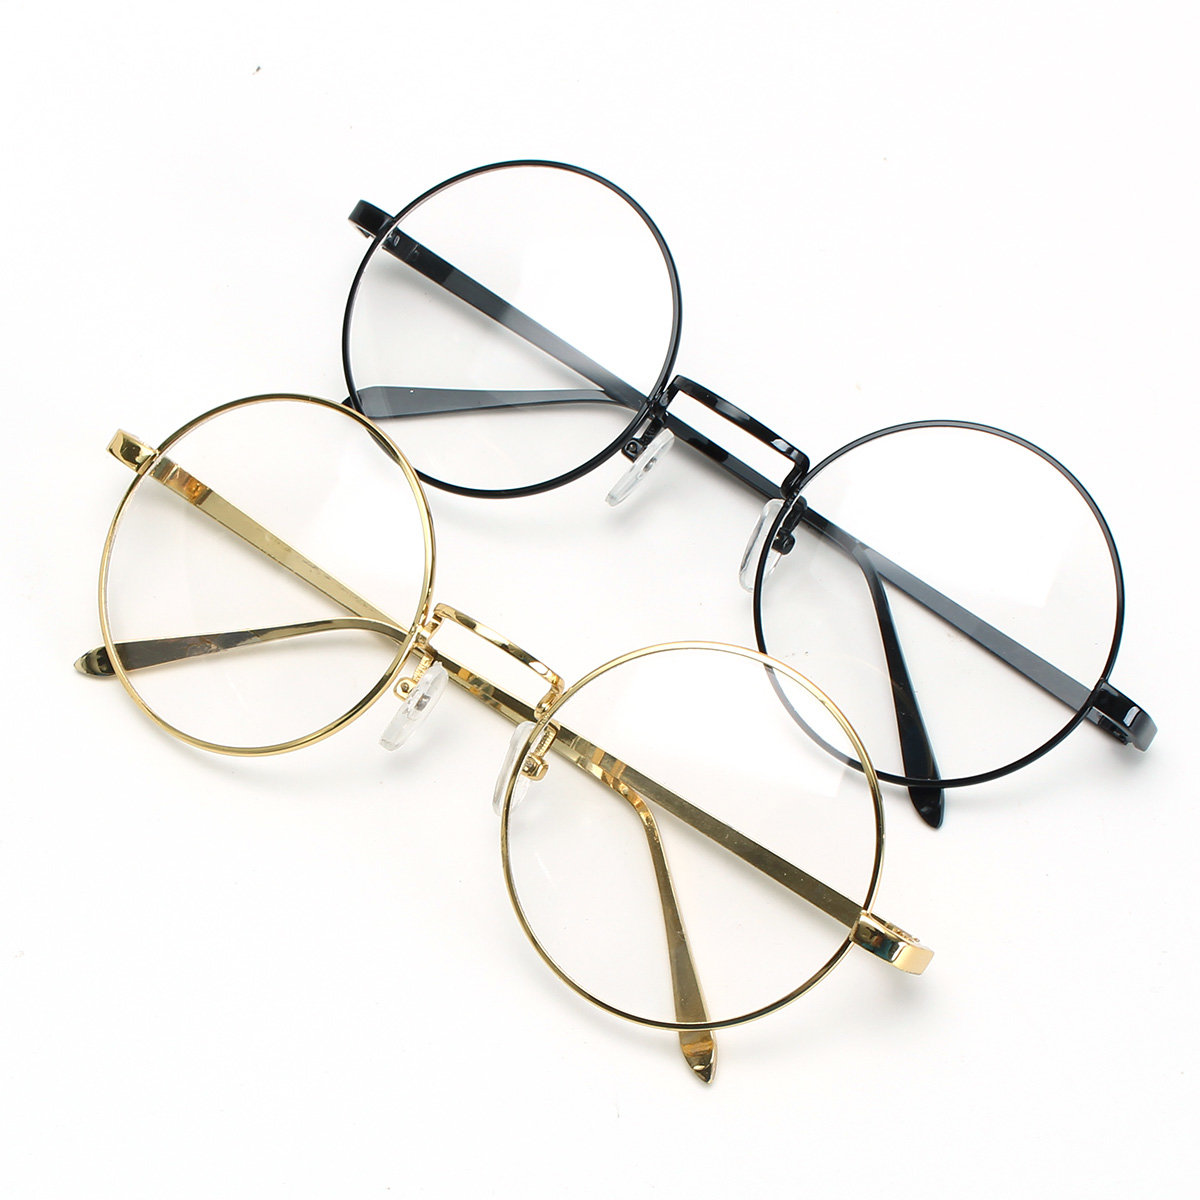 128e04b18420 gold metal vintage round eyeglasses frame clear lens full-rim glasses at  Banggood sold out